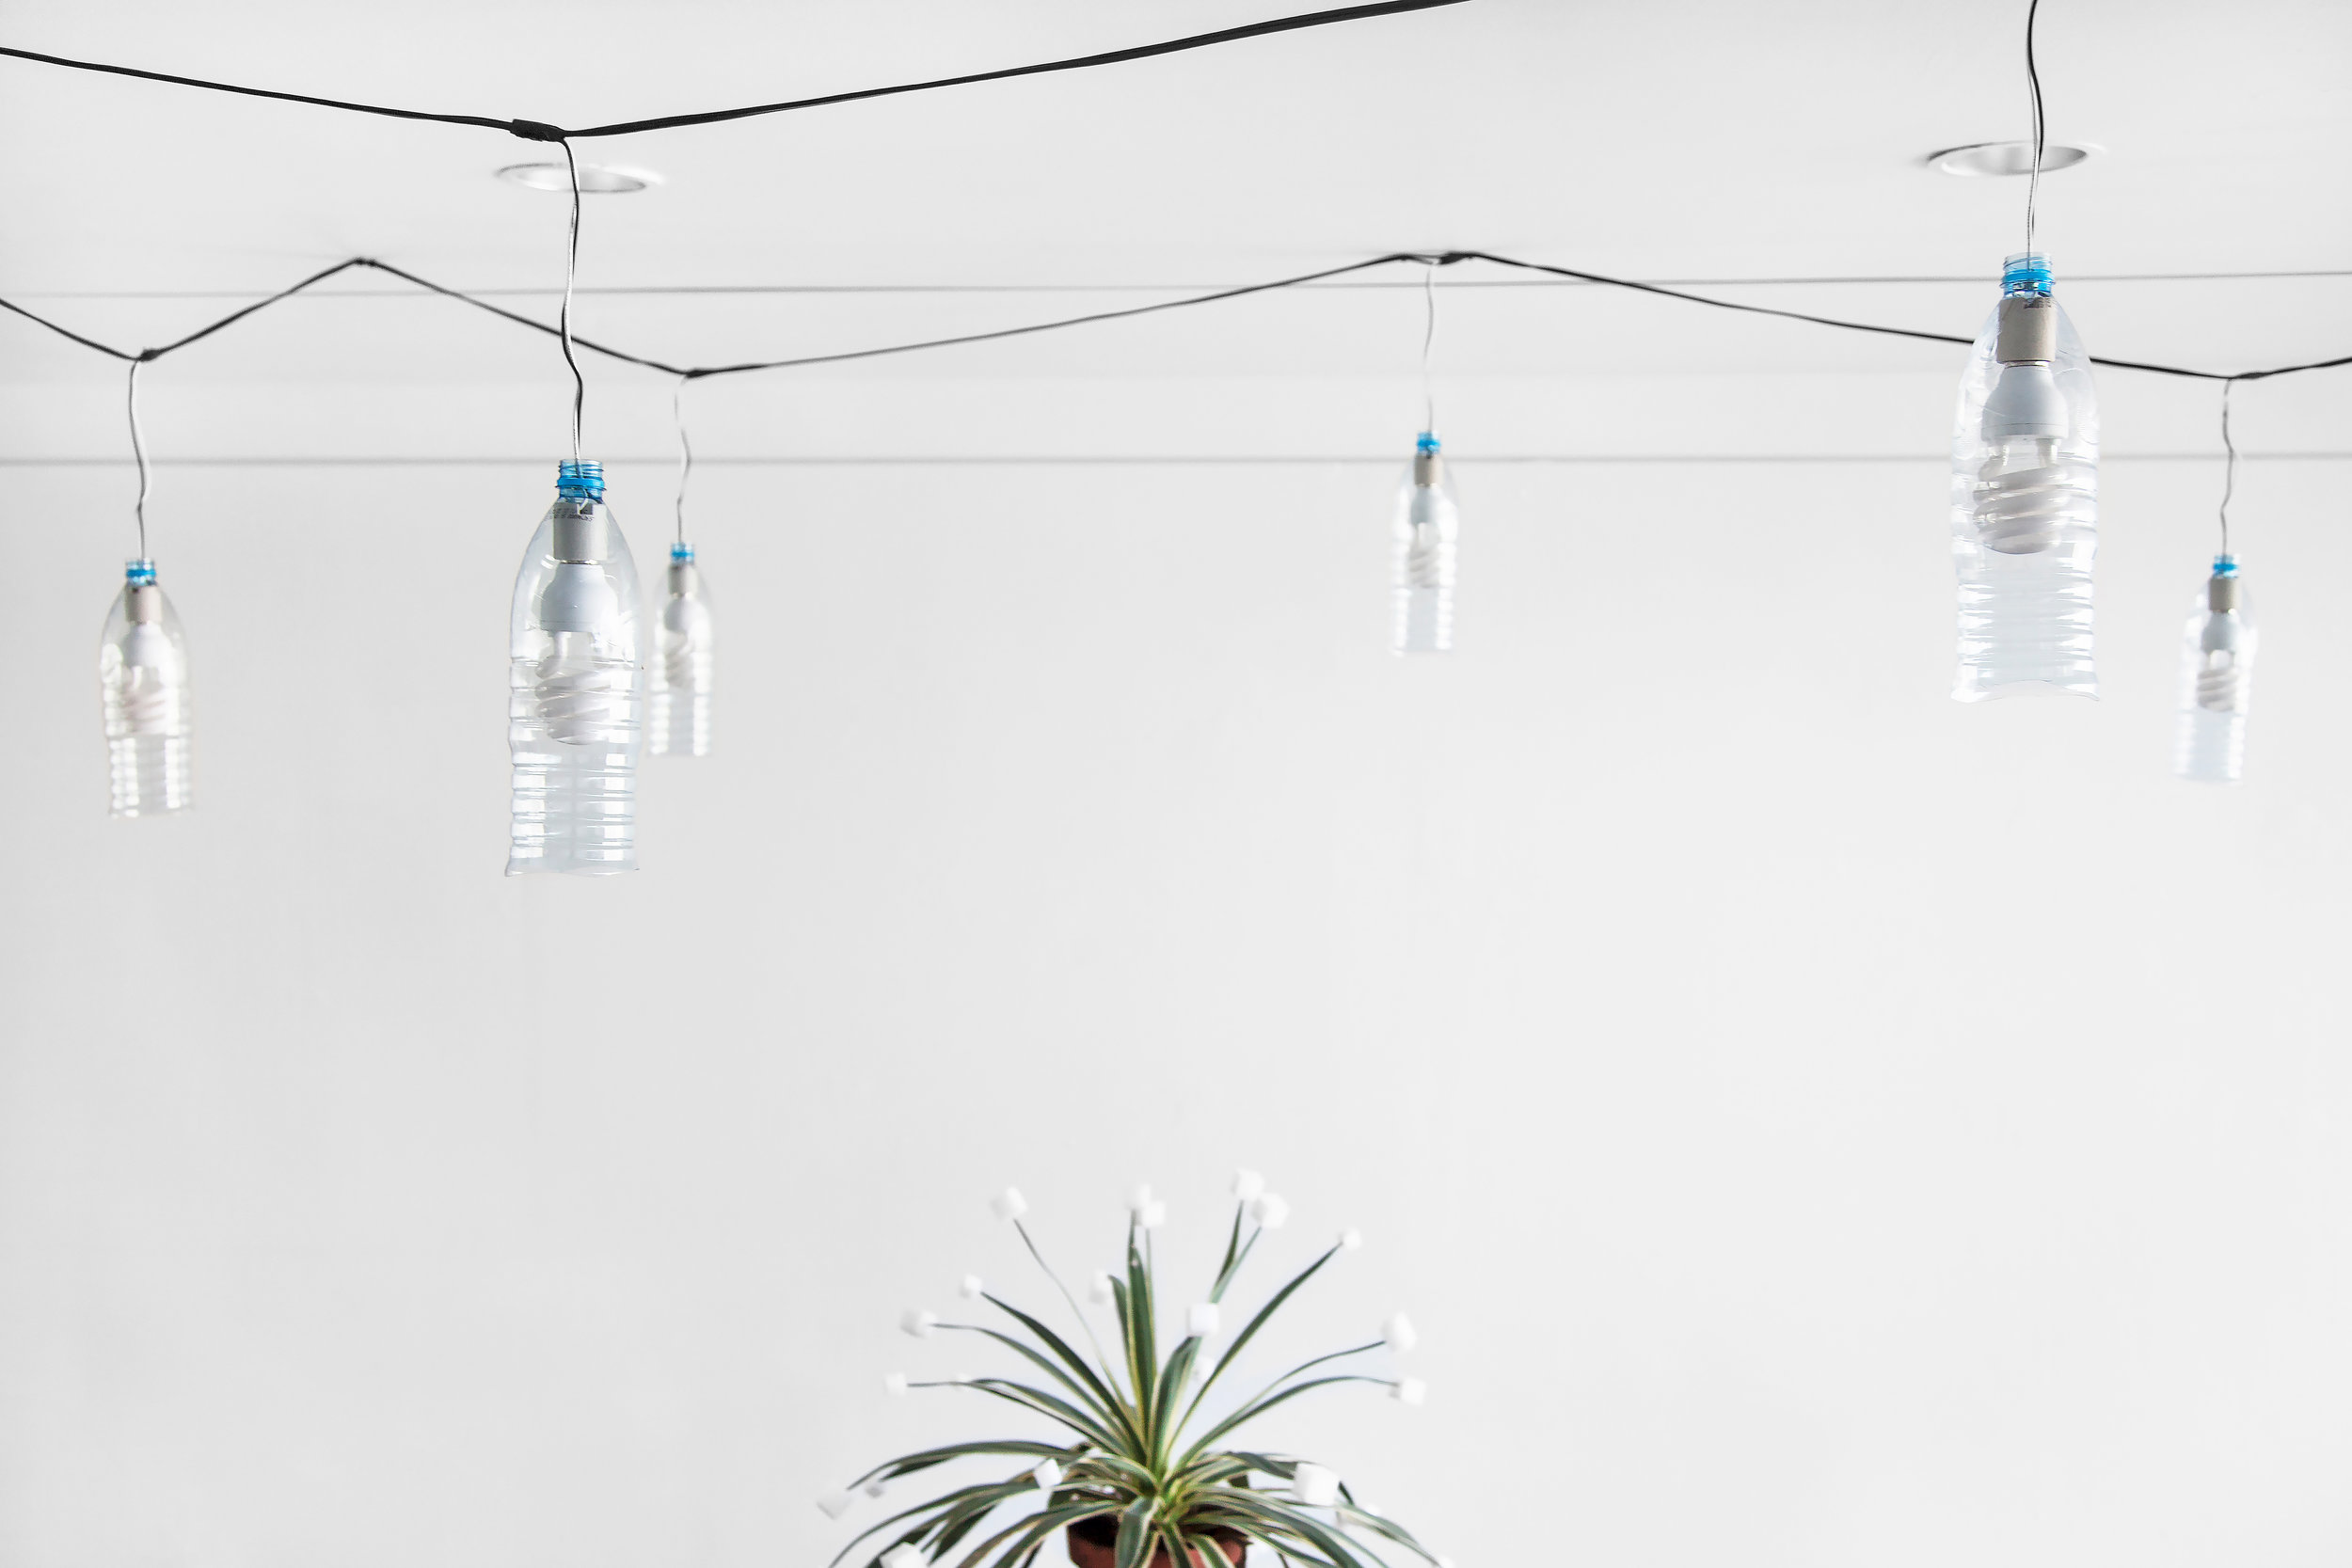 """String of Sohat , 2014, 22 Sohat water bottles, 22 60W daylight bulbs, weather proof cable/ plug, 48' (576"""" long, 14.6 m)"""